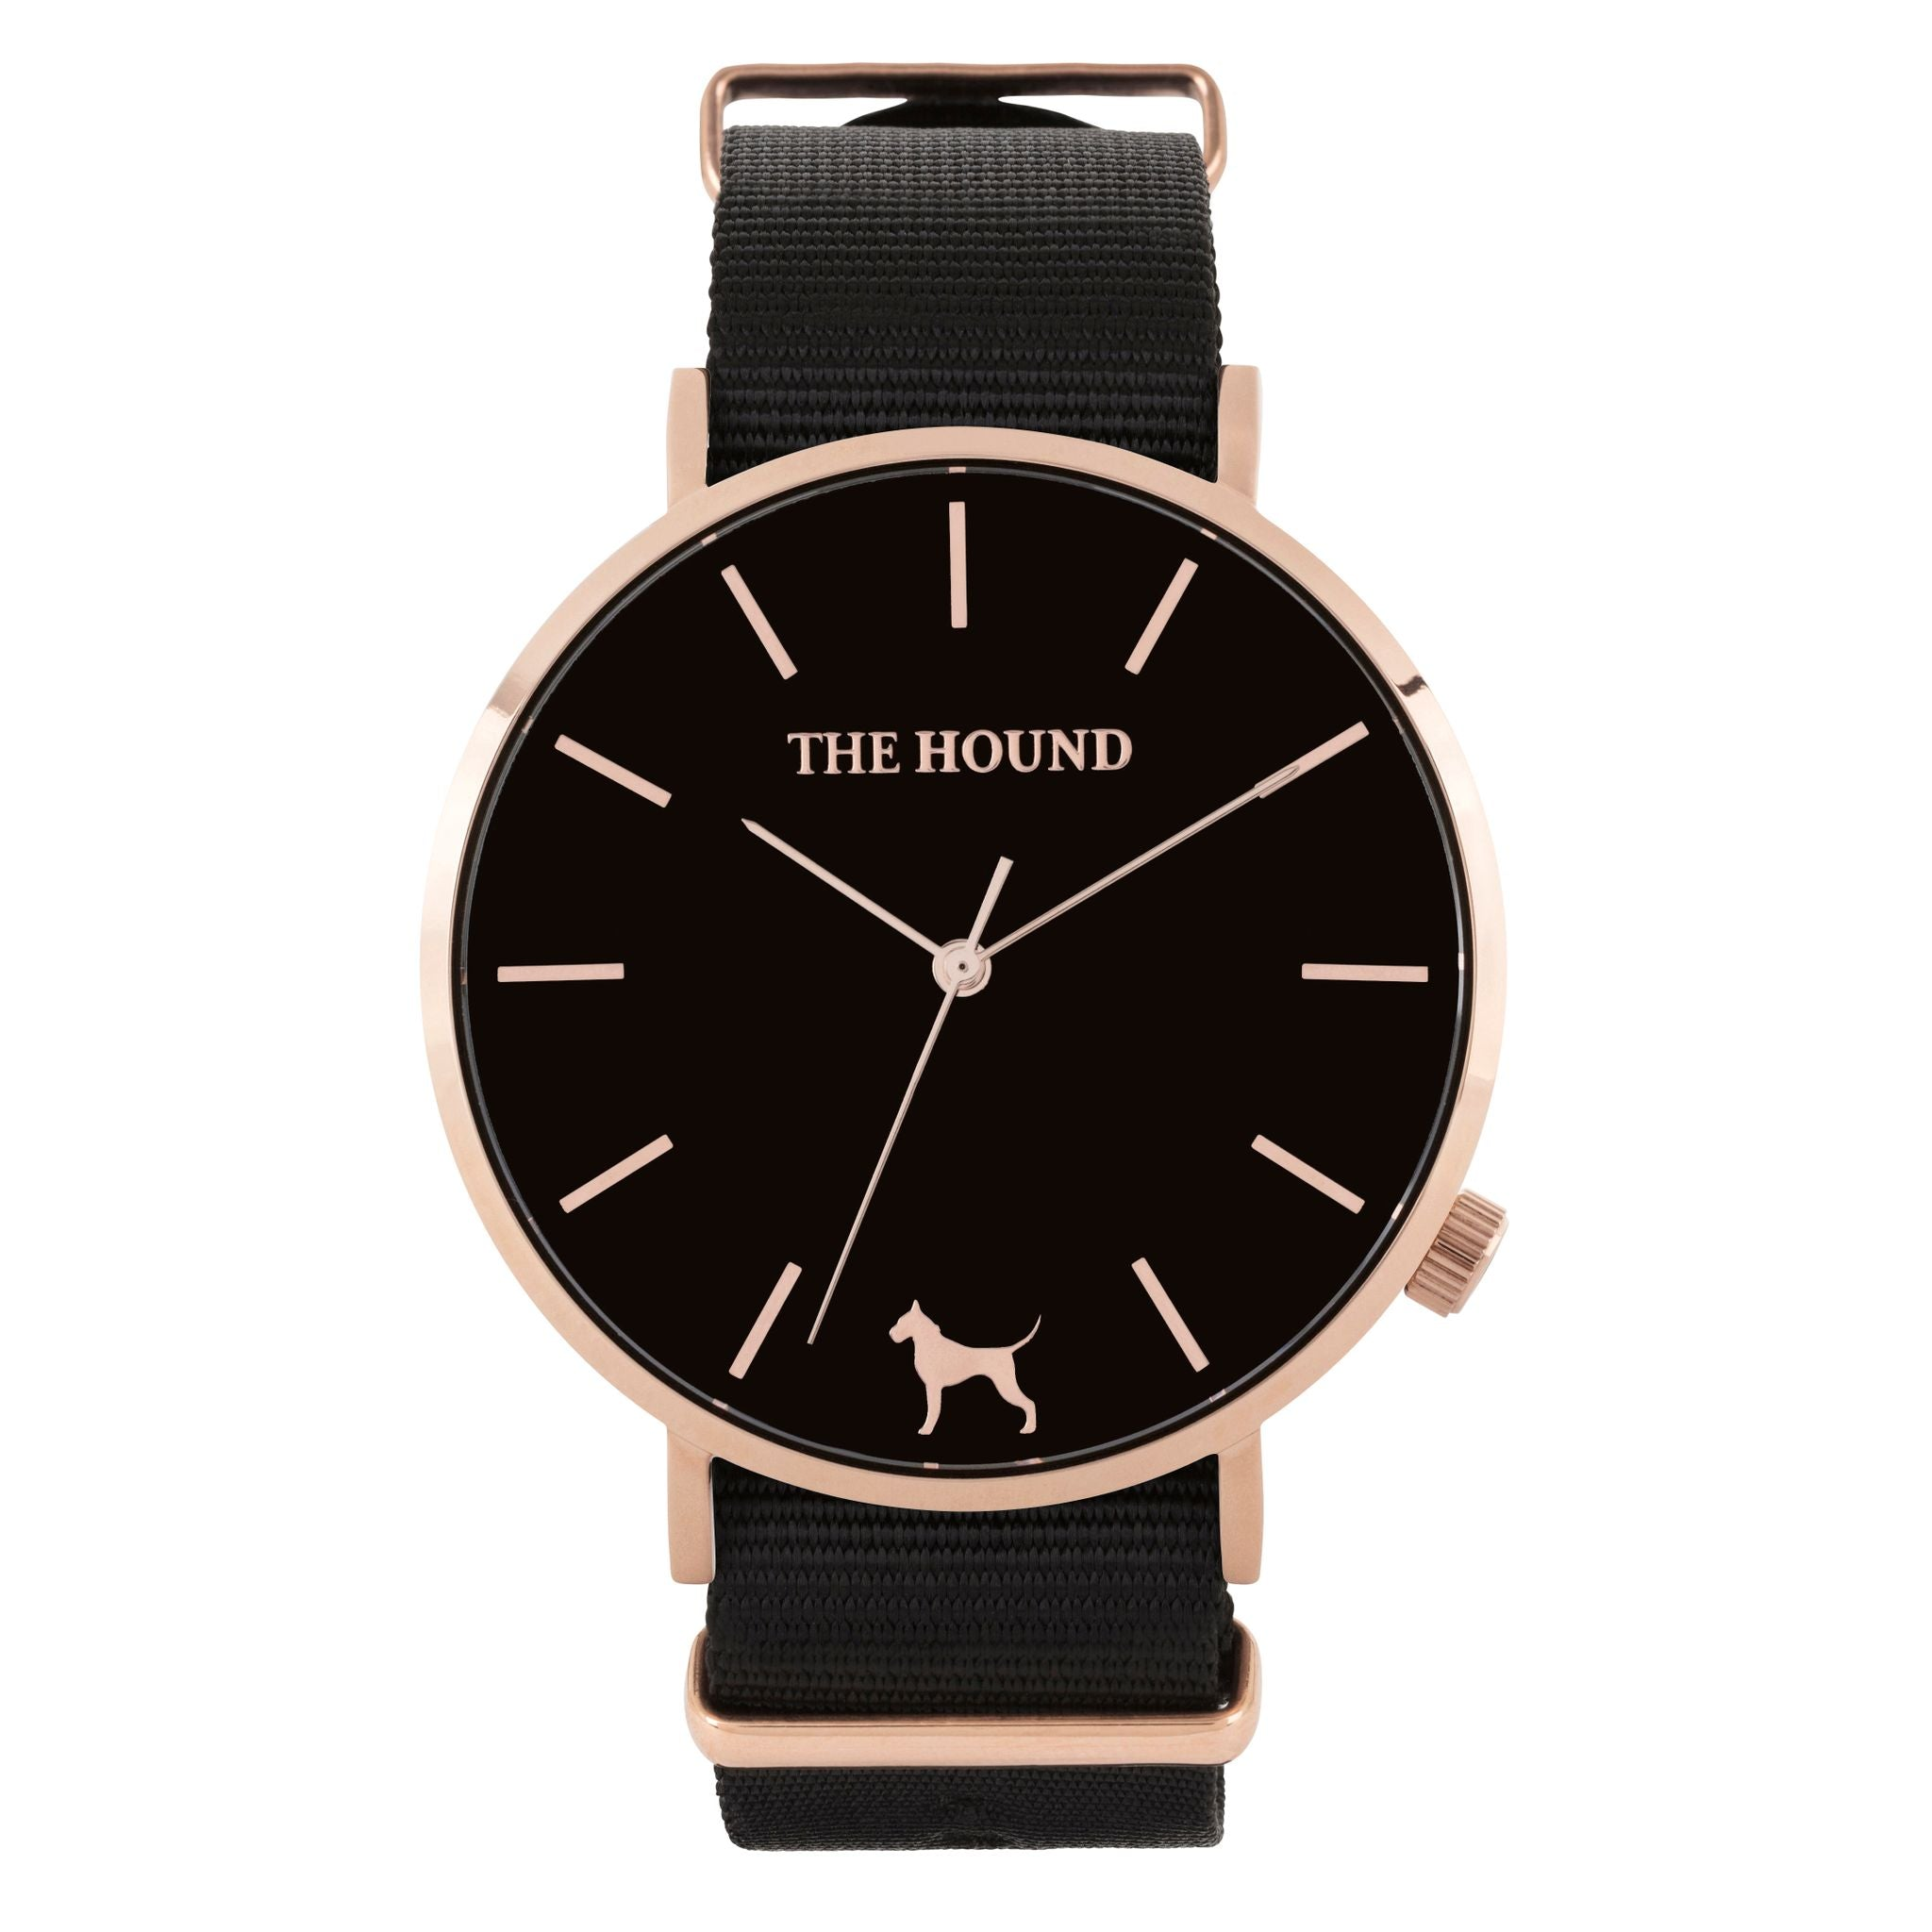 Rose gold & black face watch with black nato